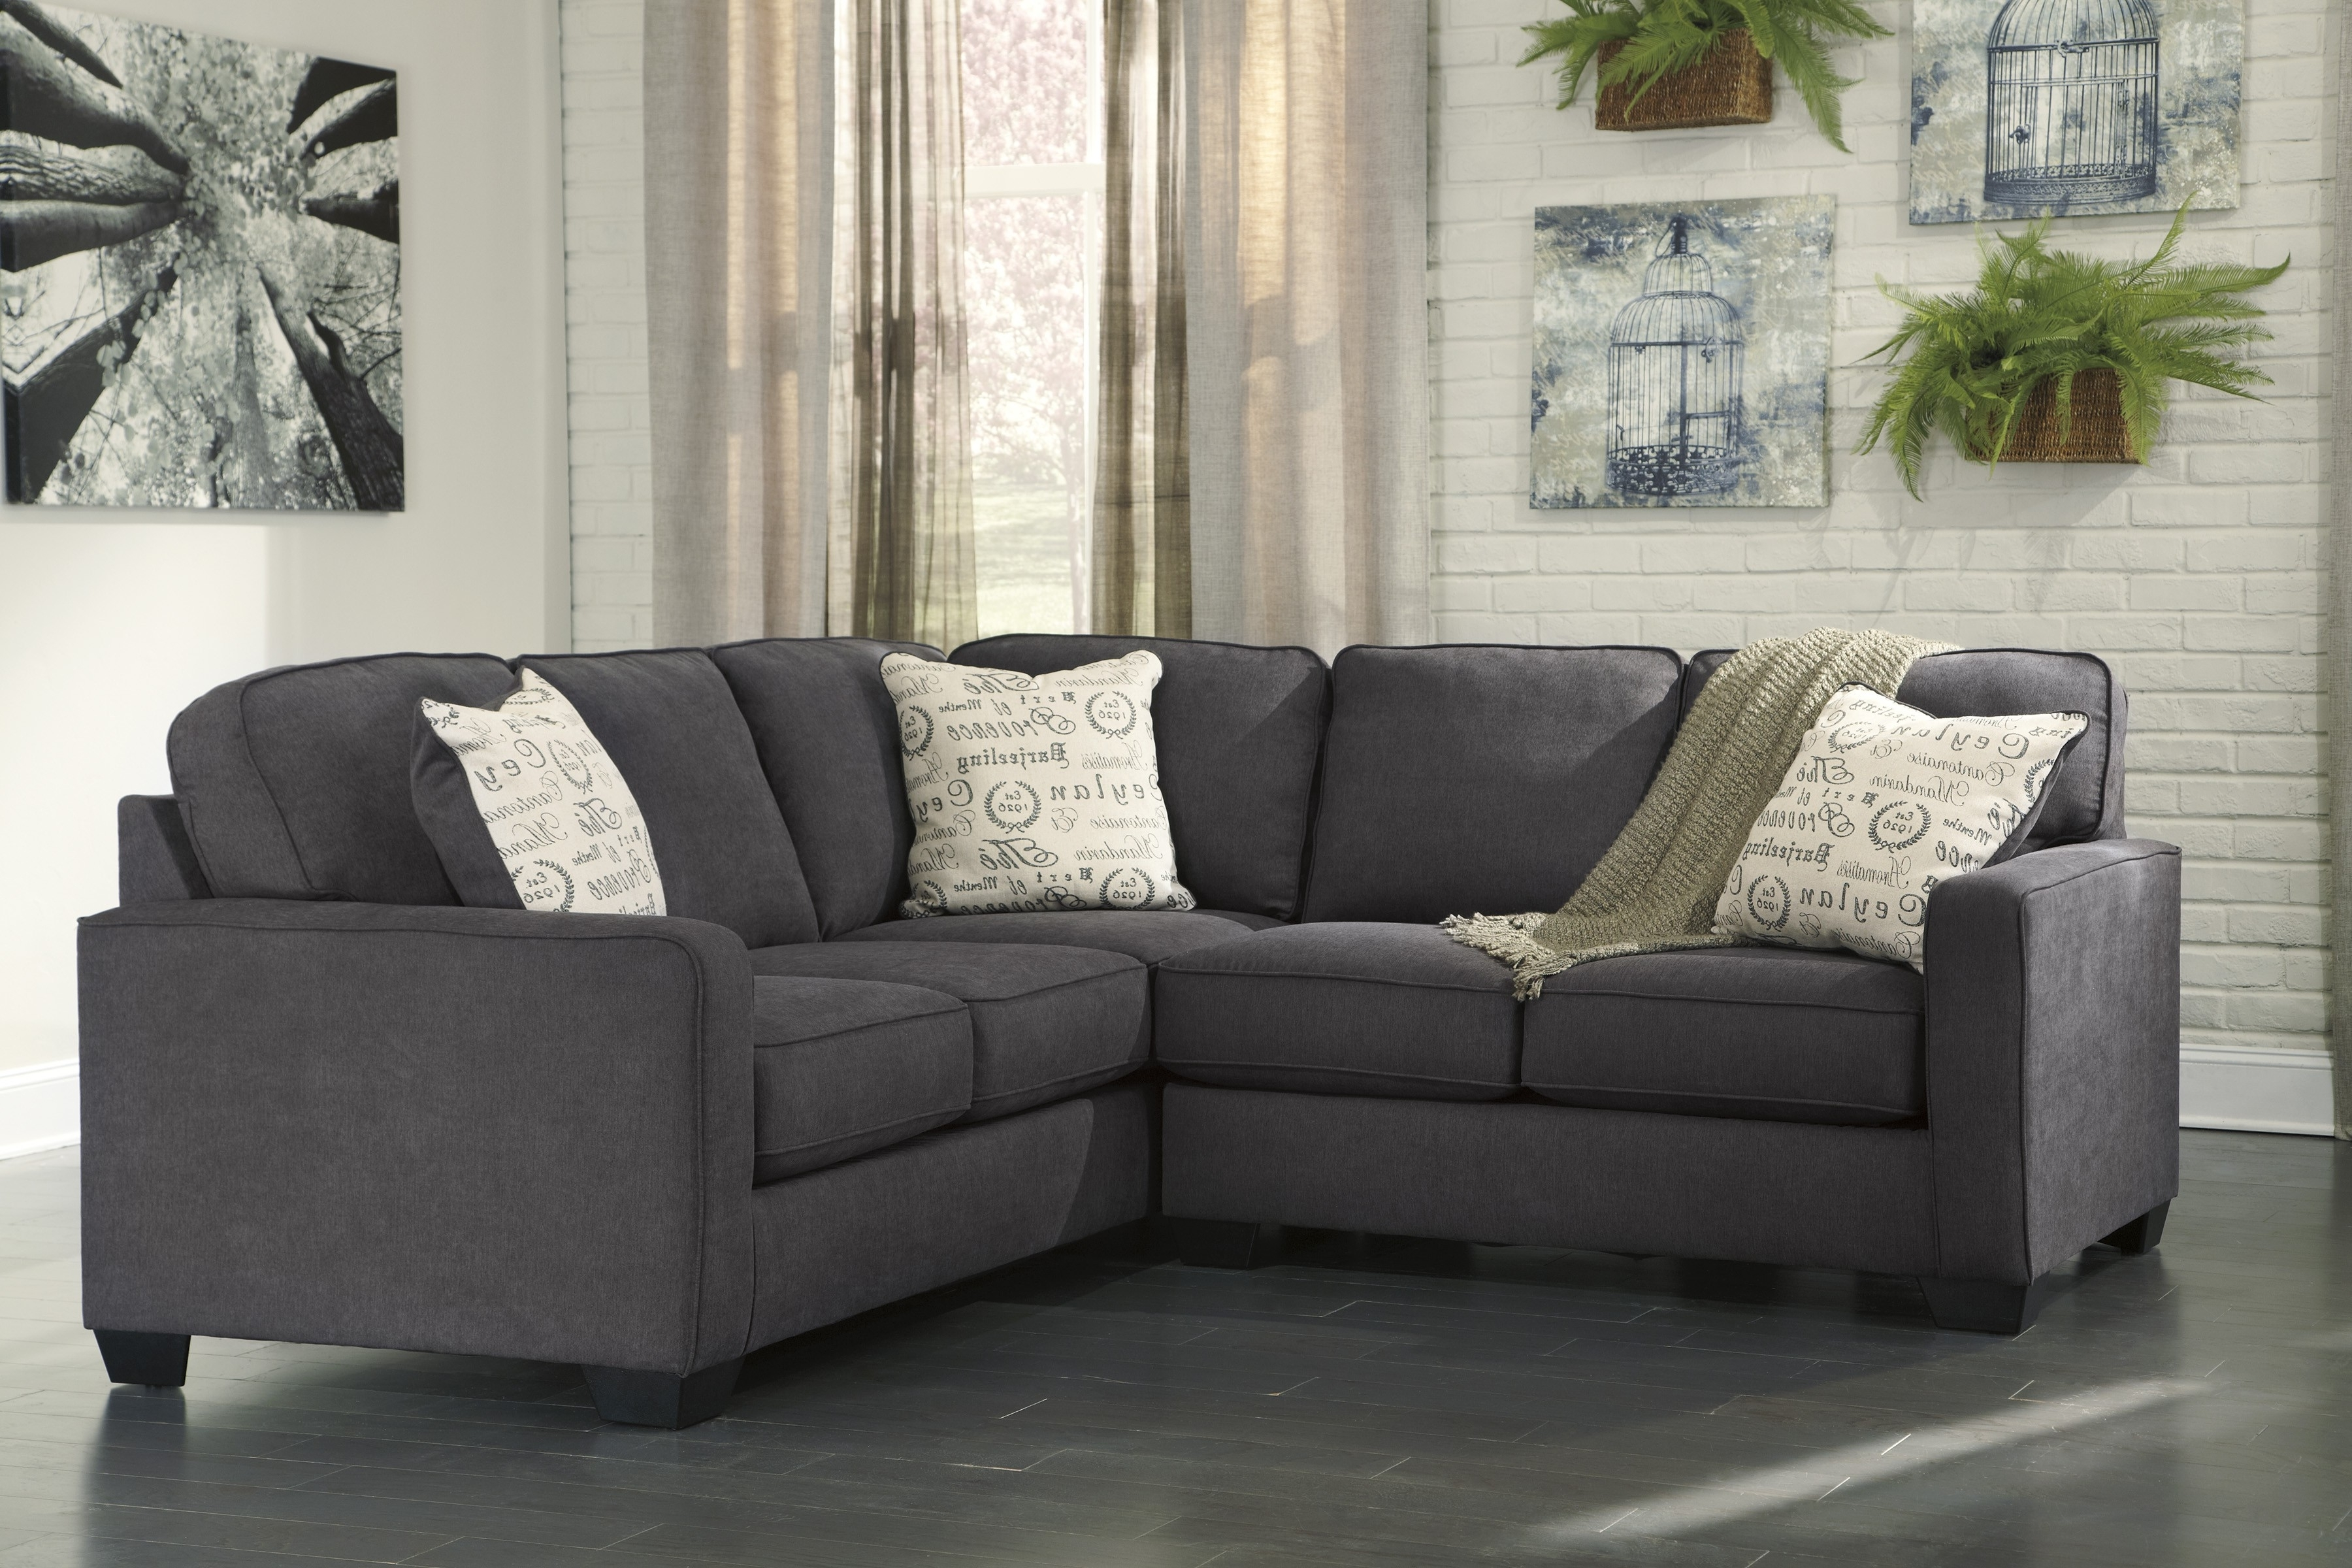 Sacramento Sectional Sofas In Most Popular Alenya Charcoal 2 Piece Sectional Sofa For $ (View 9 of 20)